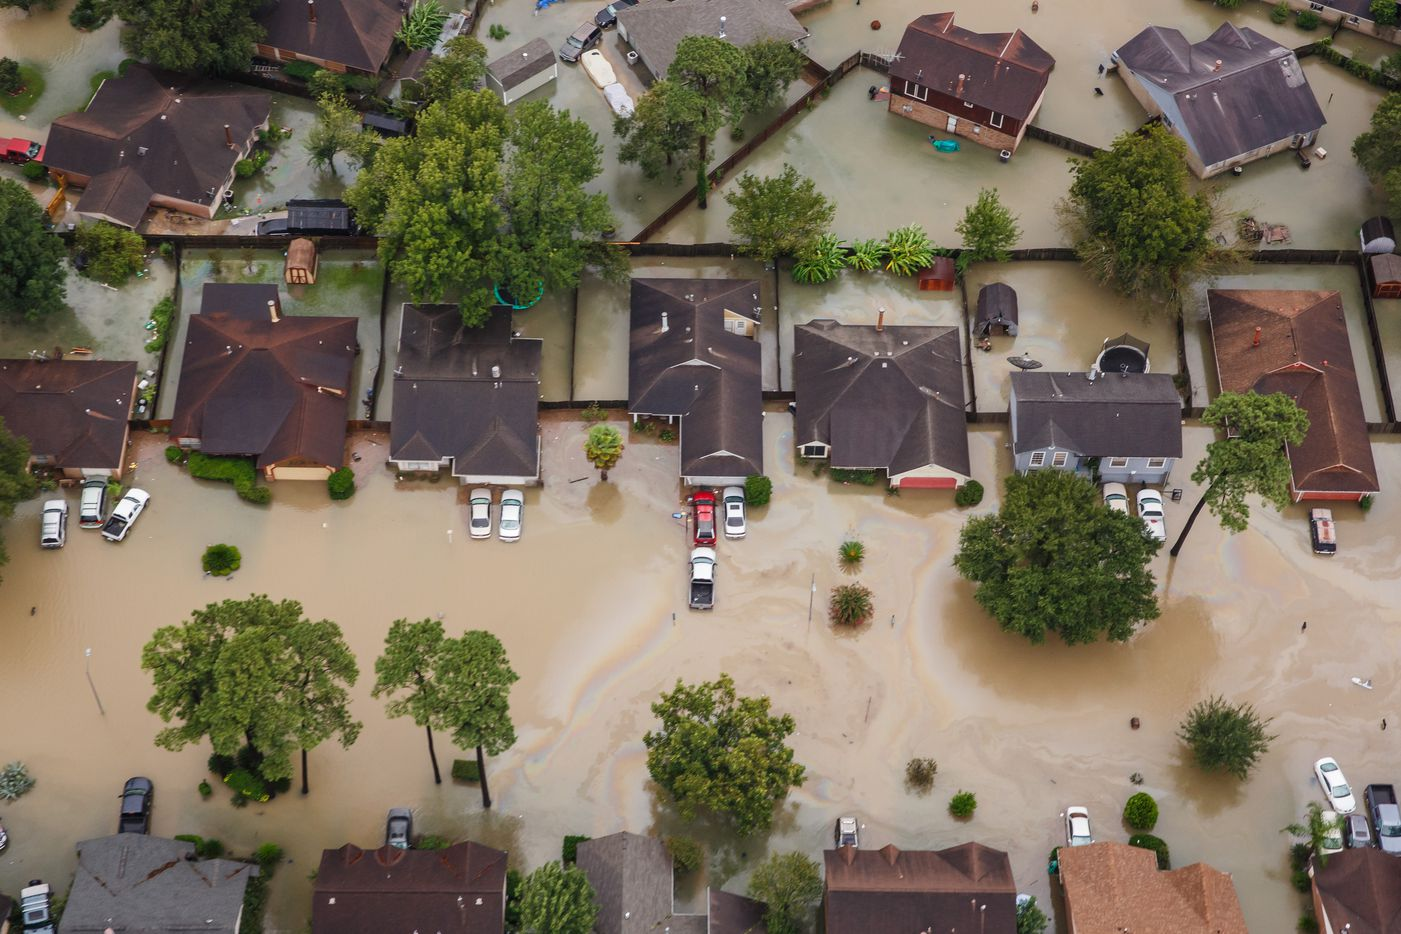 Residential neighborhoods near the Interstate 10 sit in floodwater in the wake of Hurricane Harvey in Houston, on Tuesday, Aug. 29, 2017.